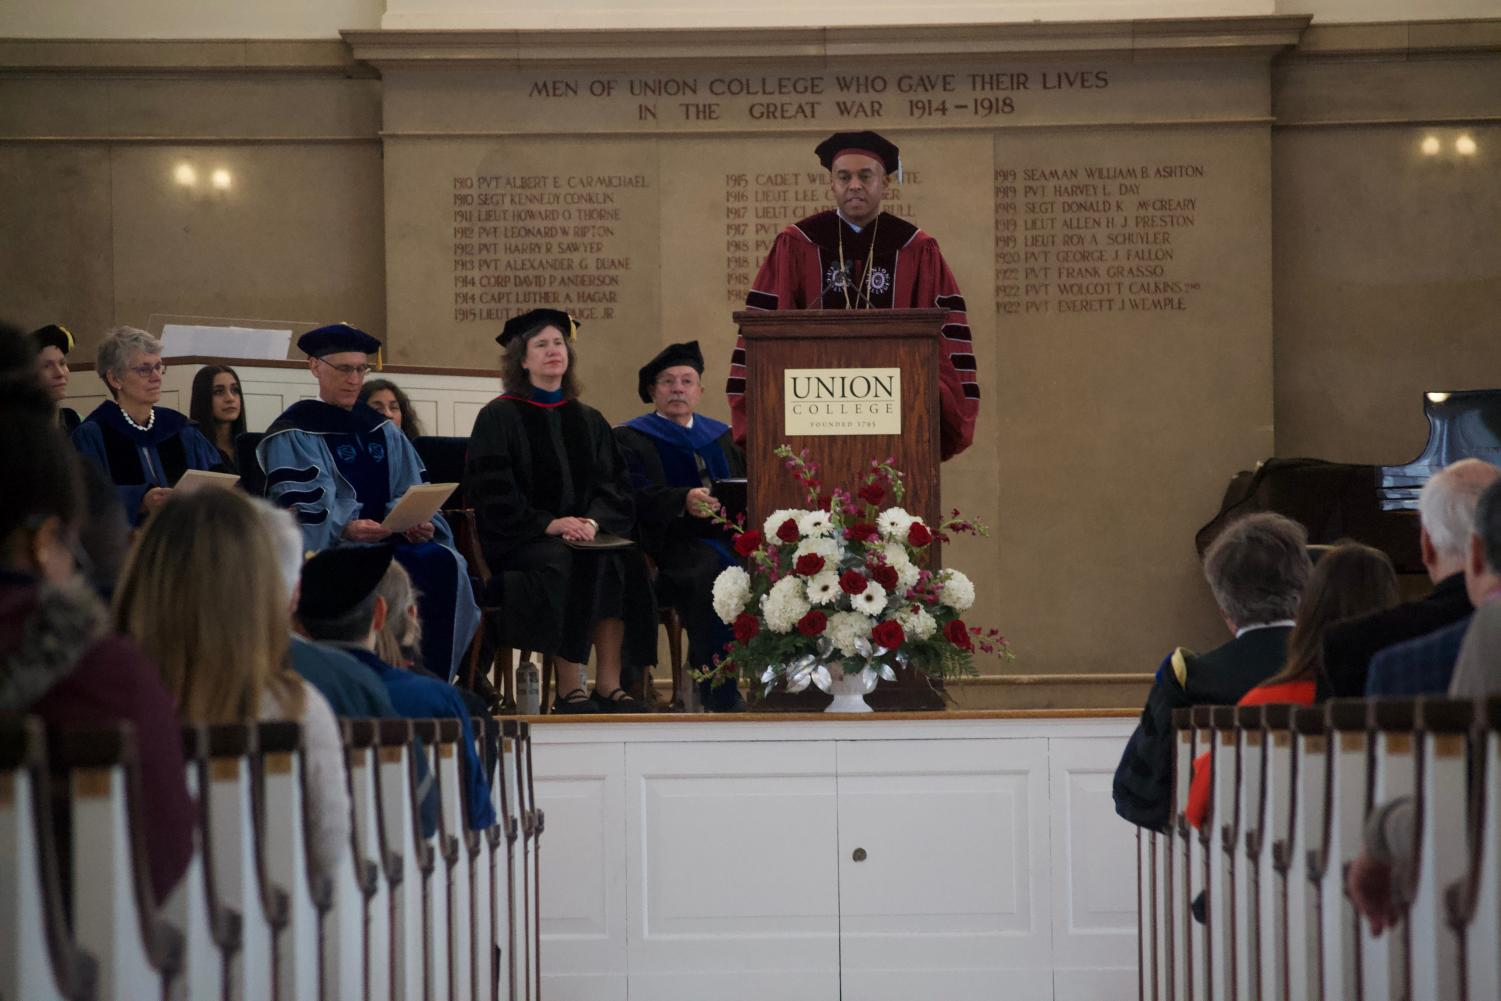 President Harris speaking at the Founder's Day Ceremony. Photo by Joe Maher.